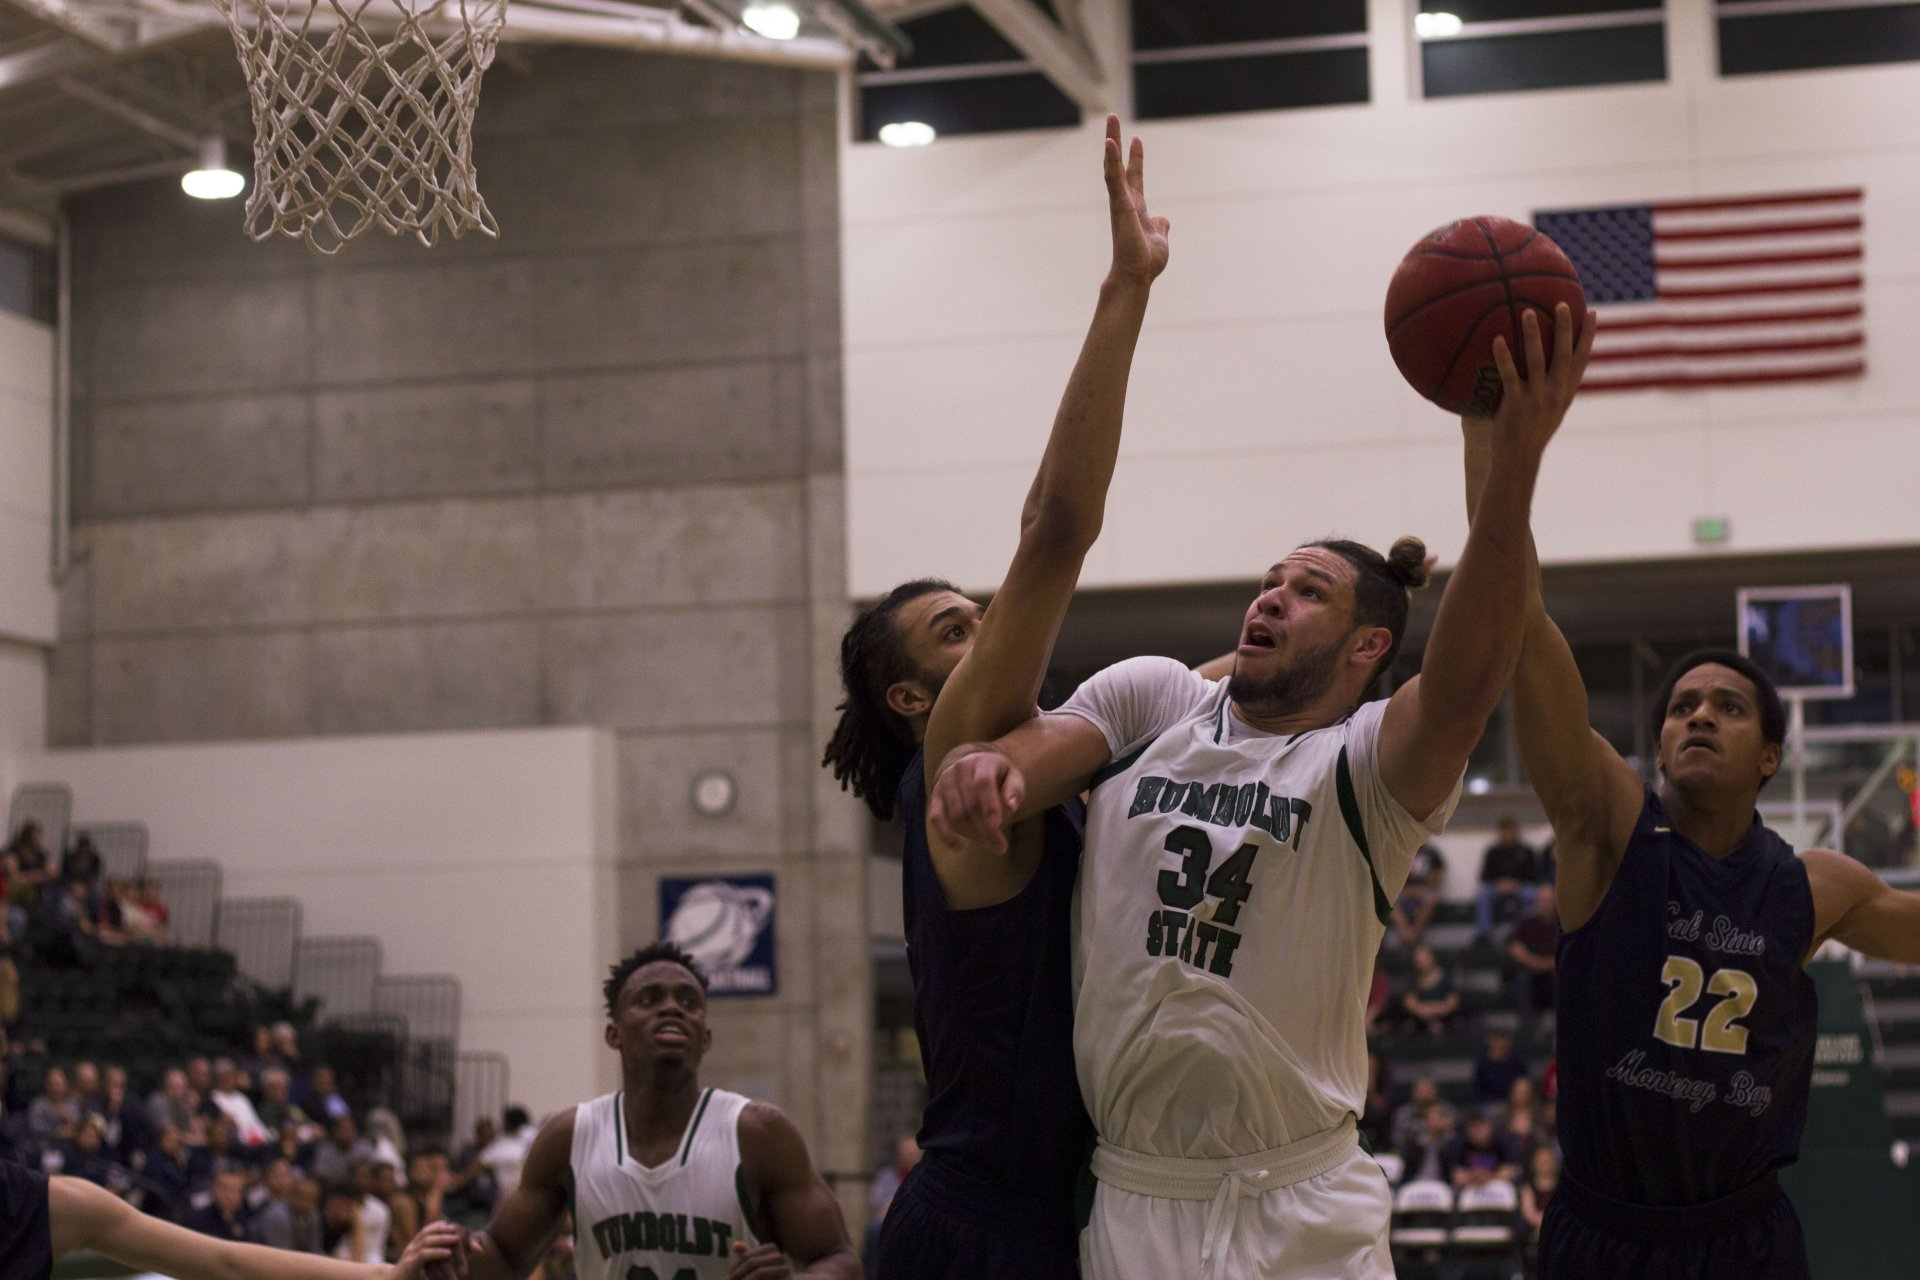 Davasyia Hagger evades a California State University, Monterey Bay defender with a spin move and uses his left hand to lay up a shot in the 87-79 Humboldt State University victory in the Lumberjack Arena on Feb. 3. Photo by Diego Linares.